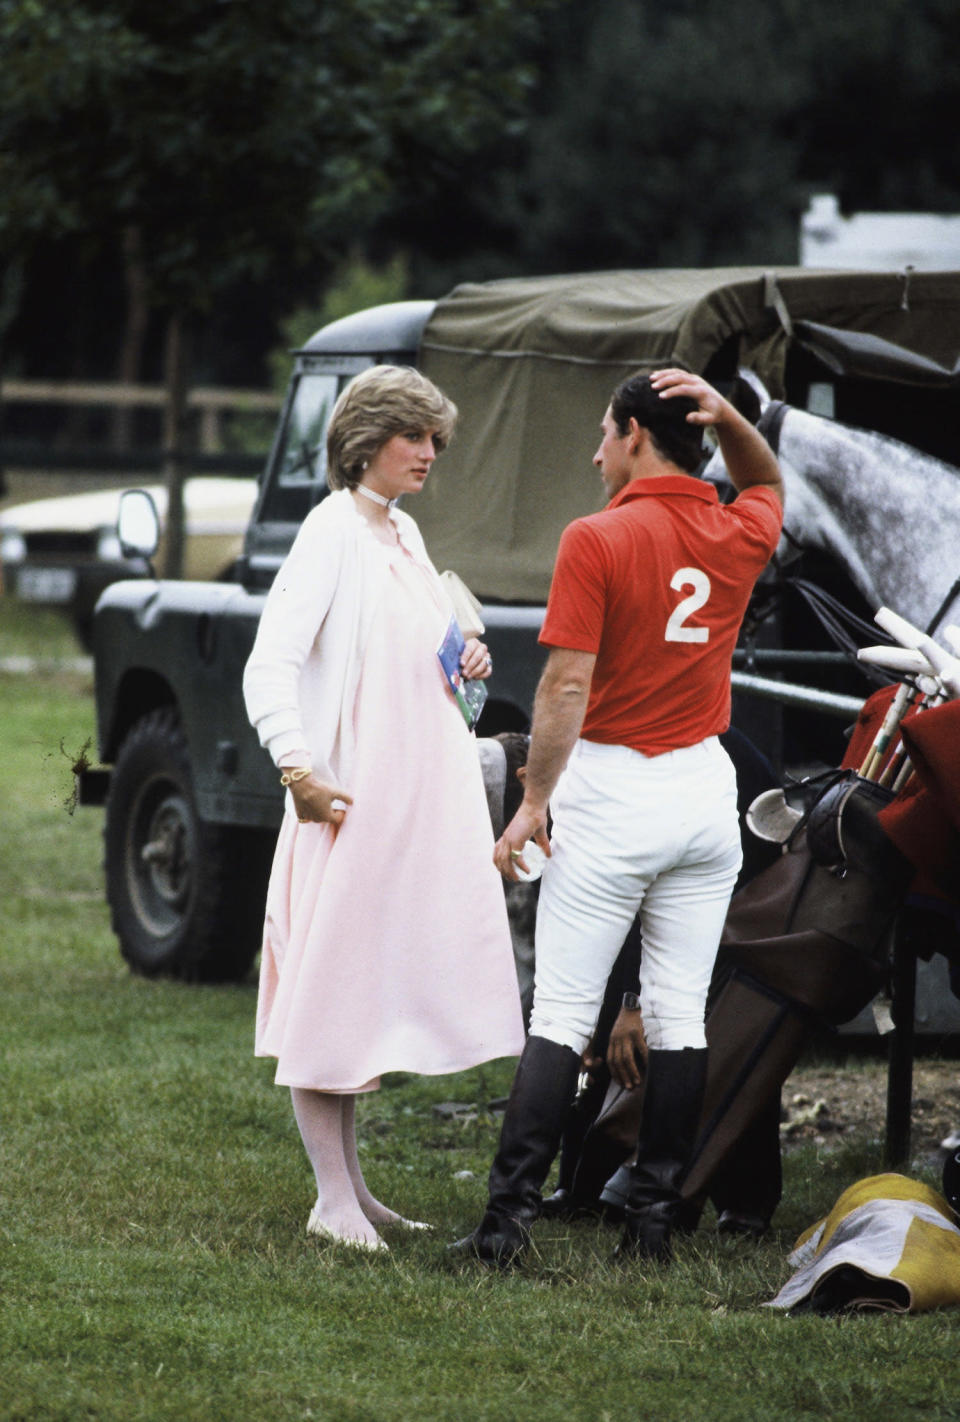 <p>Diana, Princess of Wales, wears a light pink dress and white cardigan with Prince Charles, Prince of Wales, at a polo event at Windsor Great Park in June 1982, in Windsor. (Photo: Getty Images) </p>